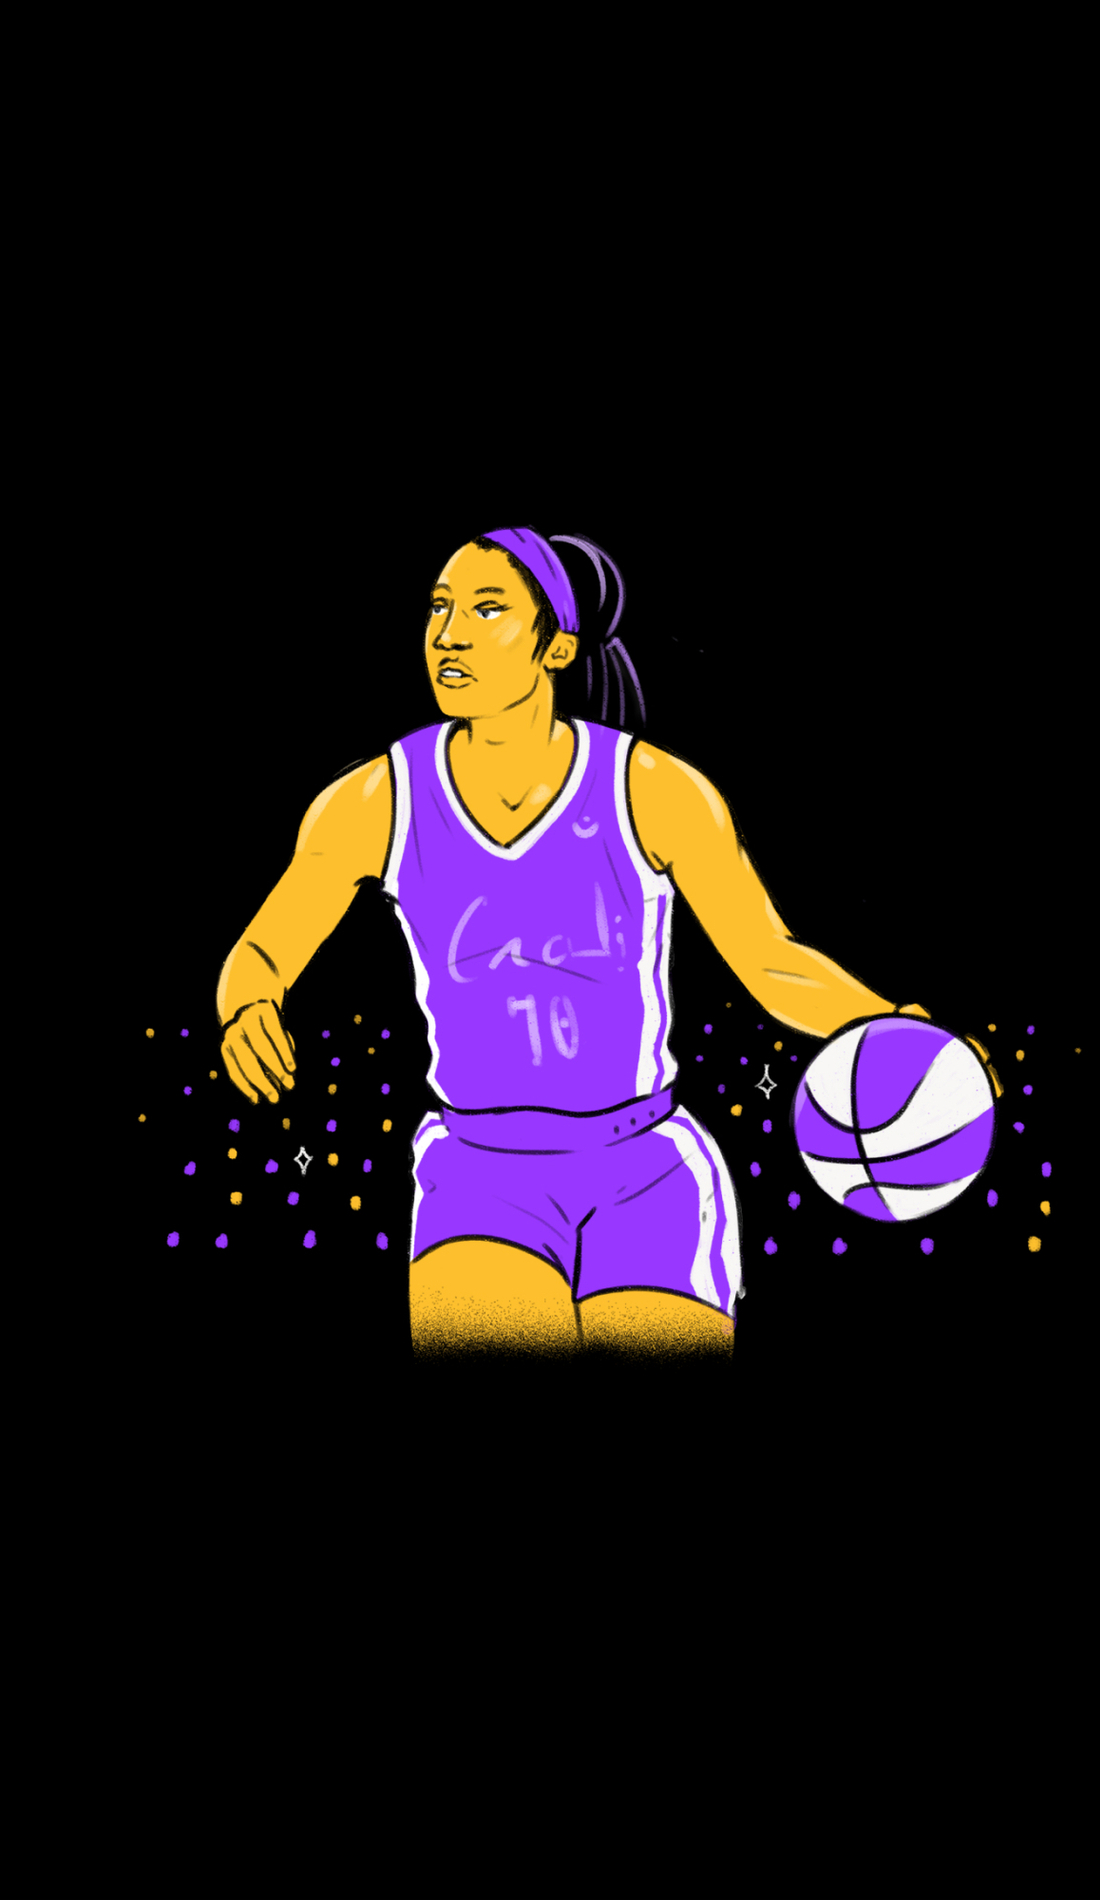 A Rutgers Scarlet Knights Womens Basketball live event